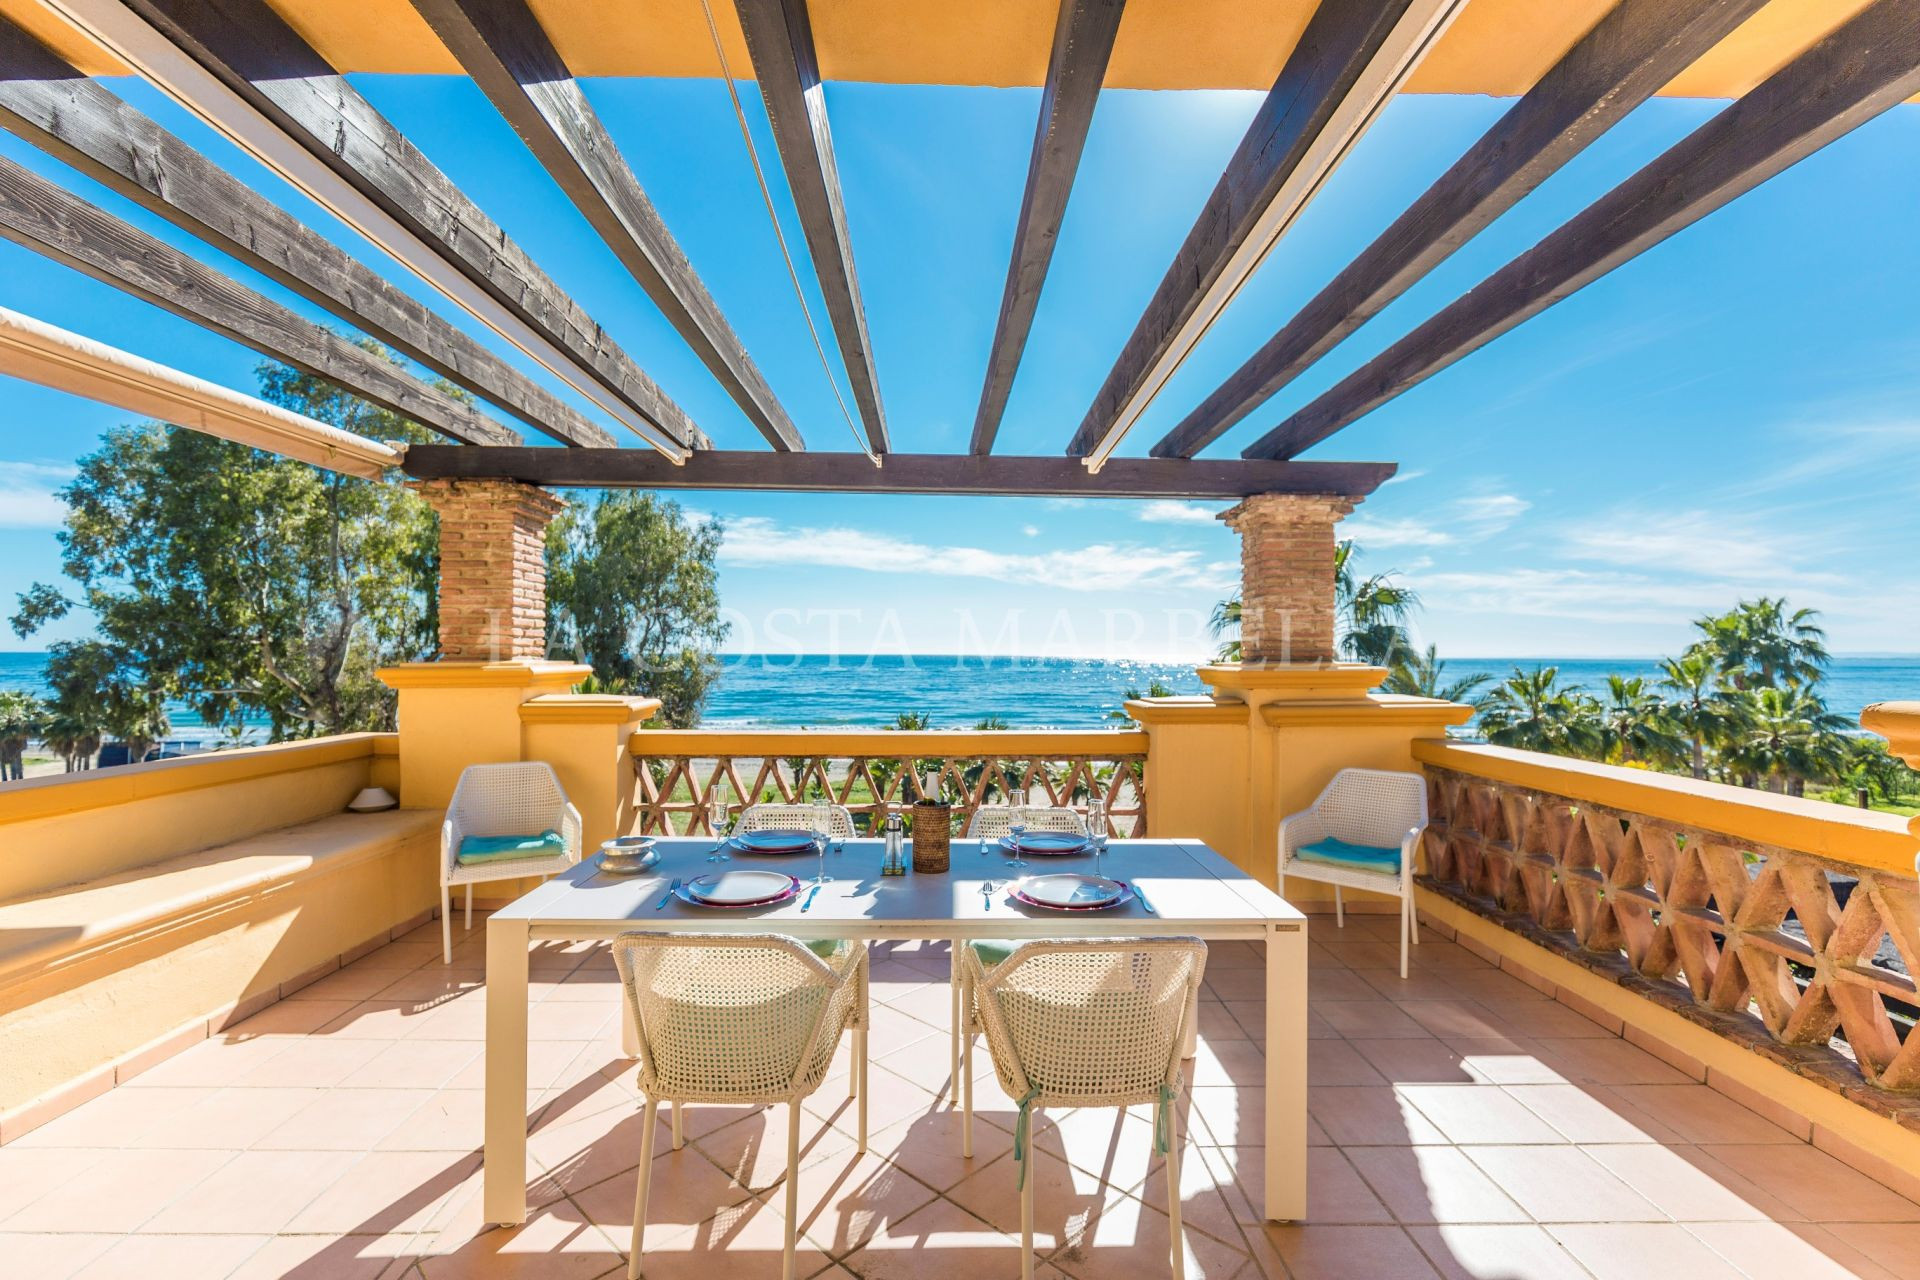 Sunny Marbella frontline beach apartment for sale with amazing sea and beach views